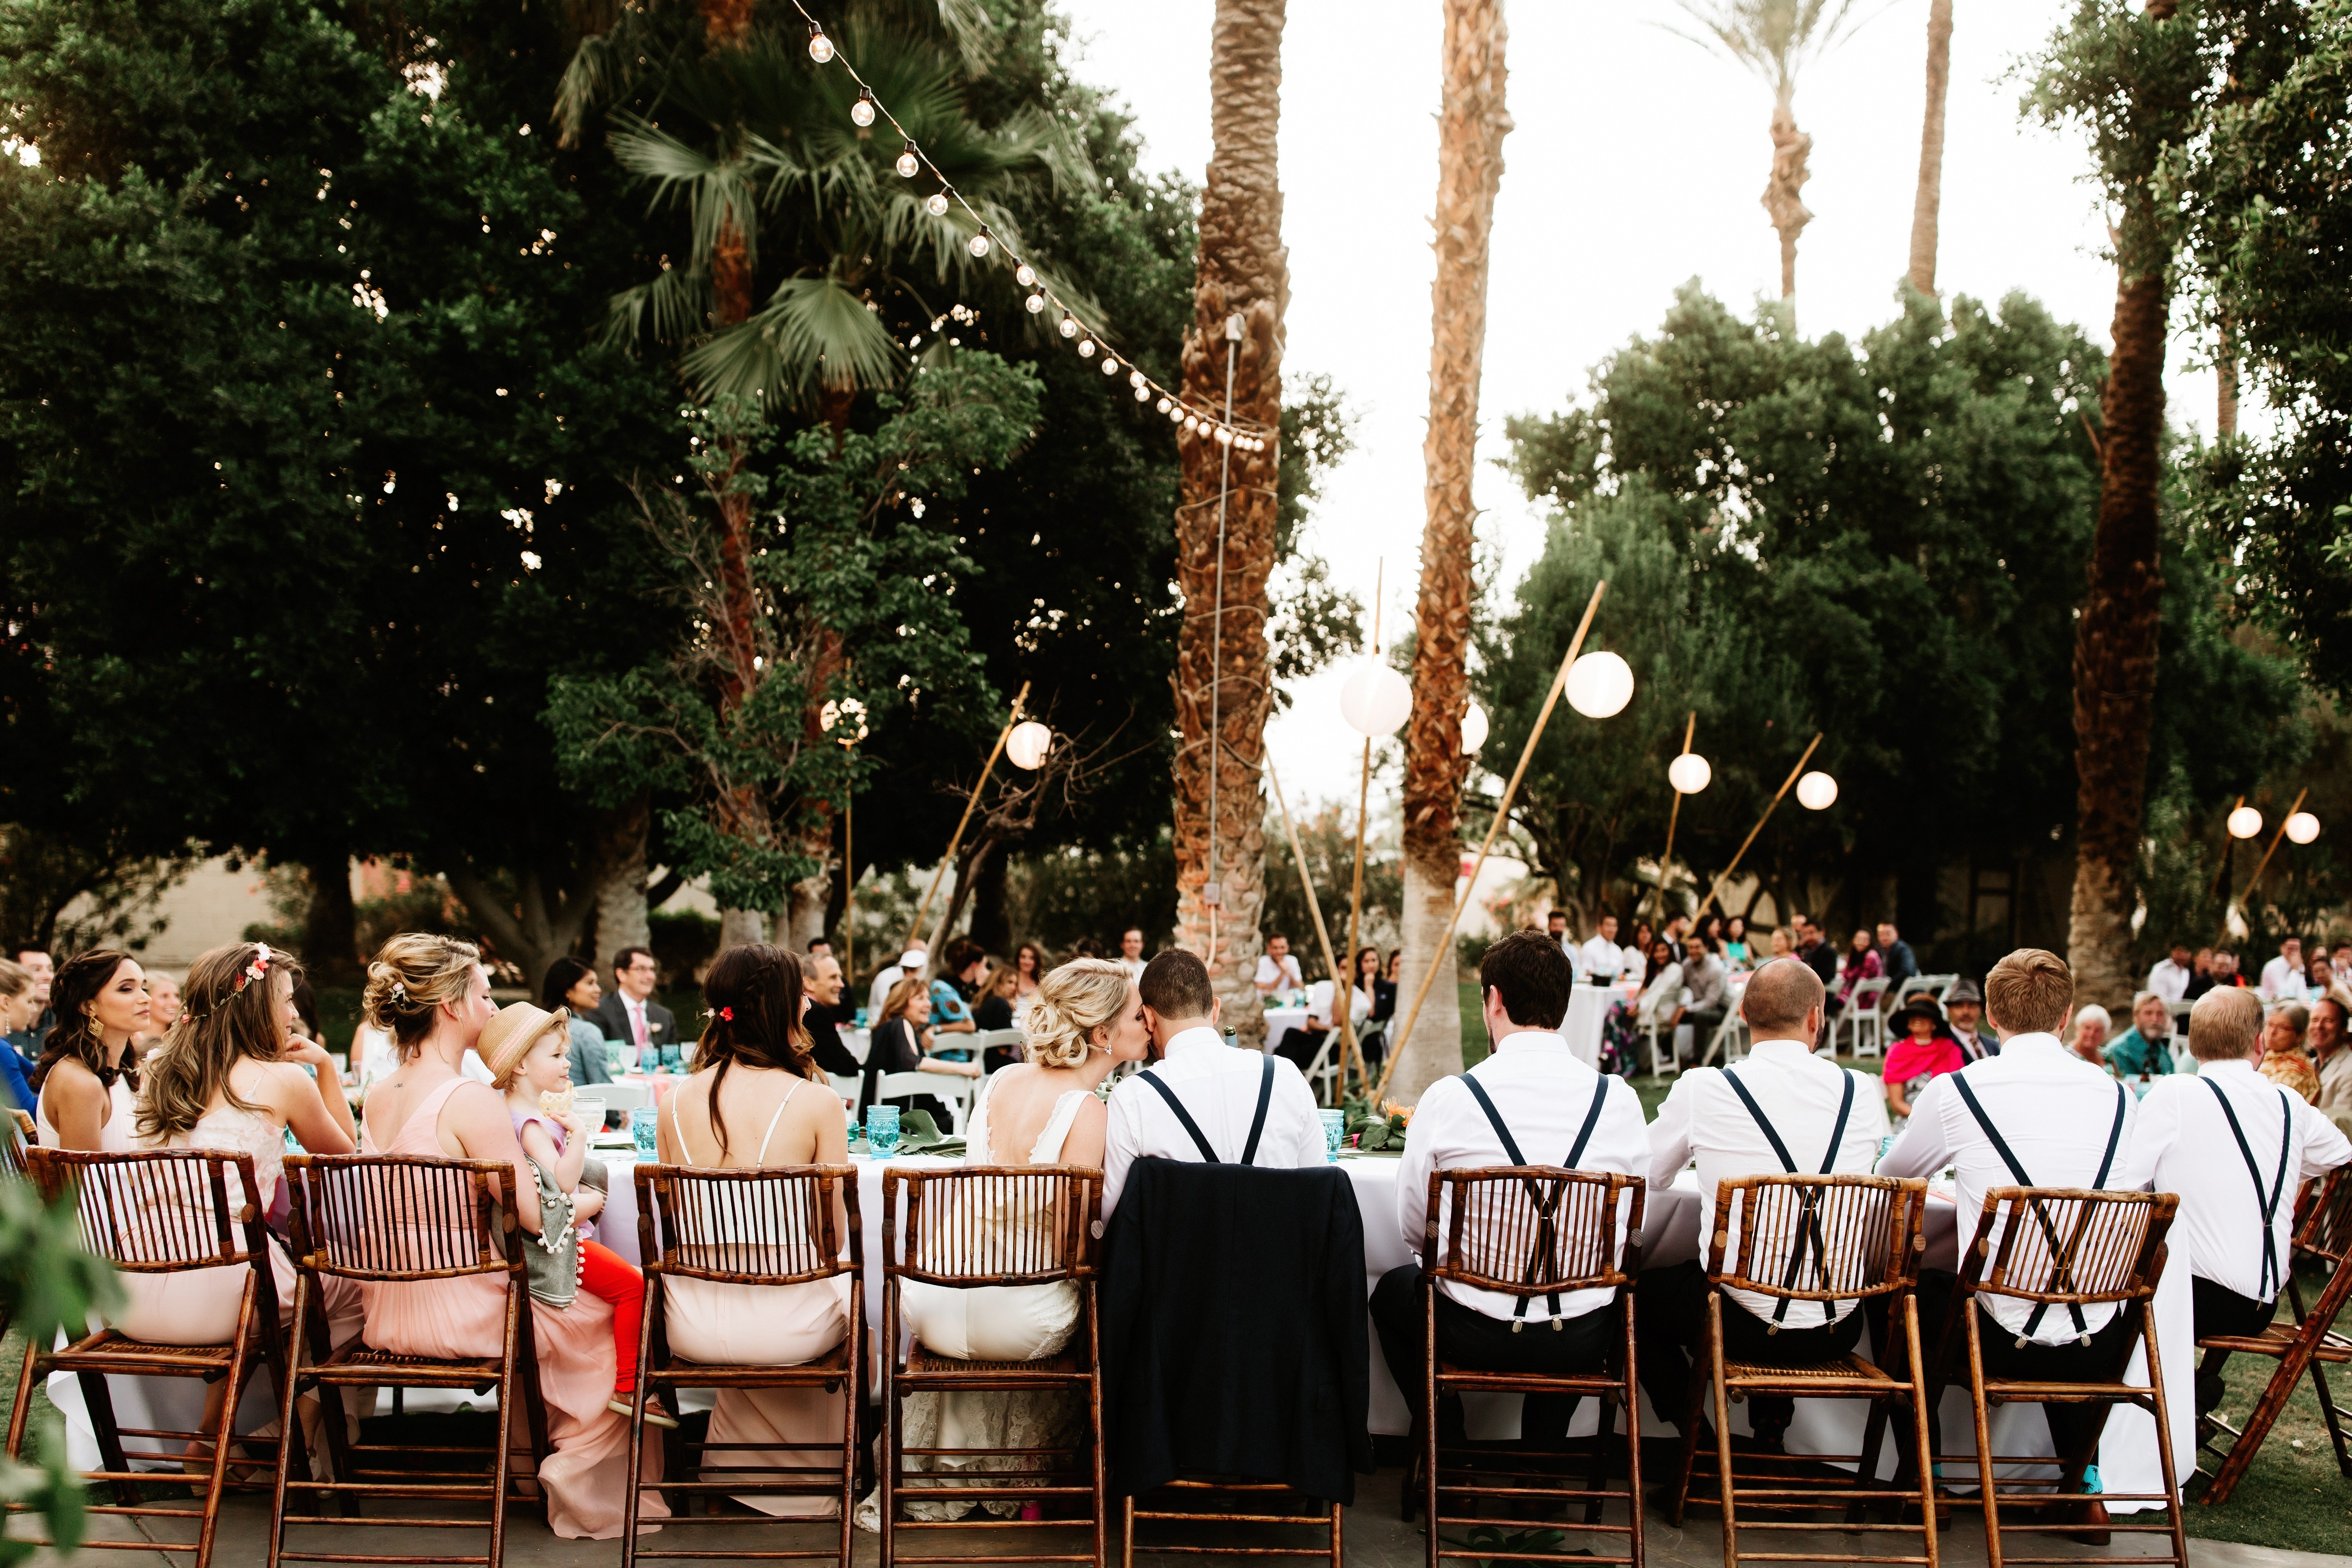 25 Backyard Wedding Ideas Brides regarding Ideas For A Backyard Wedding